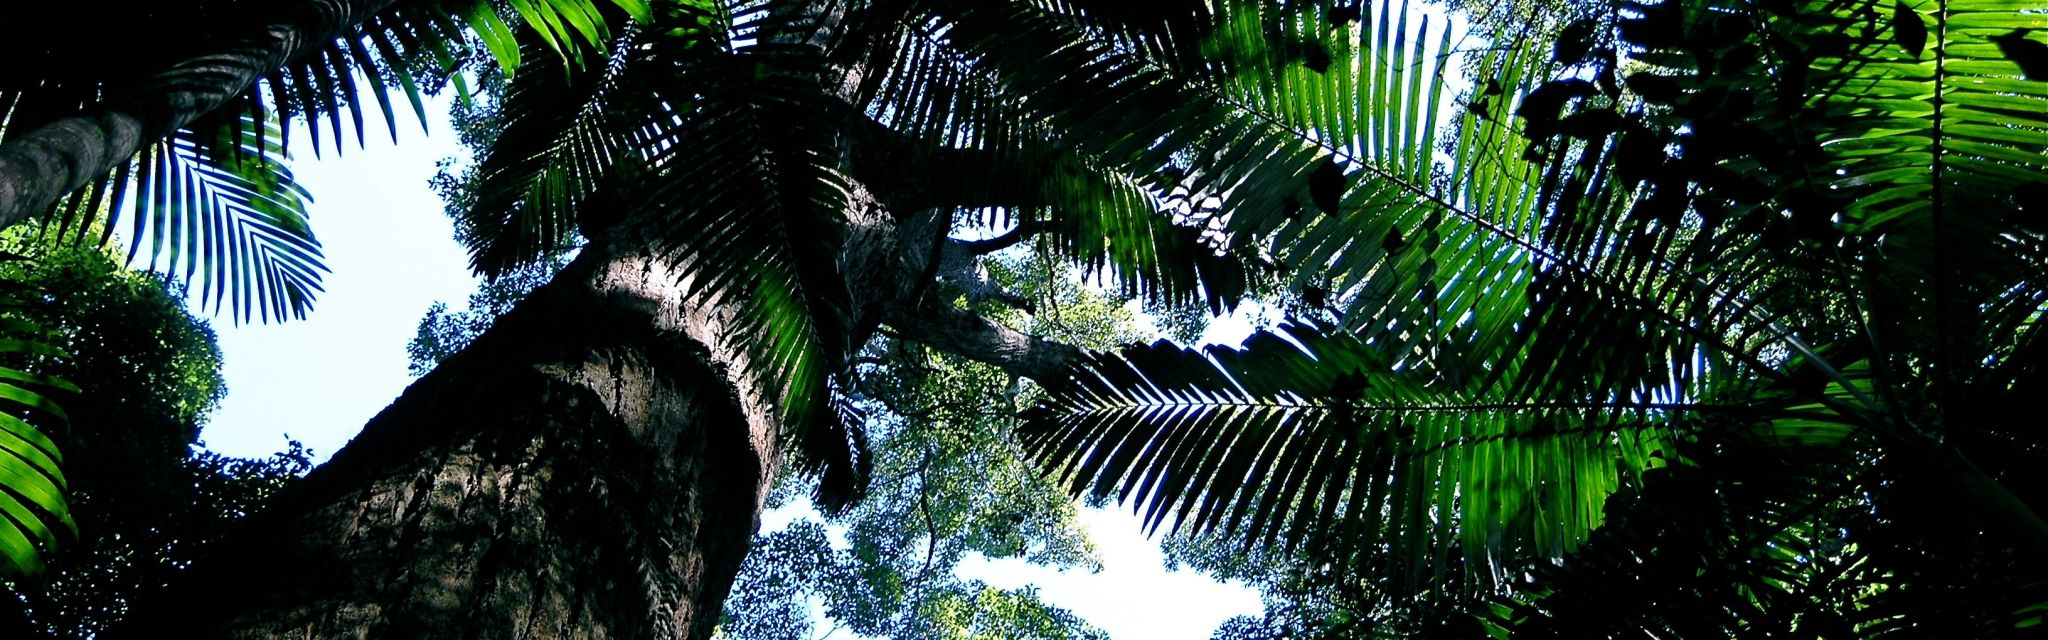 Palms in the rainforest canopy, image from a Nature Bound Australia Tour